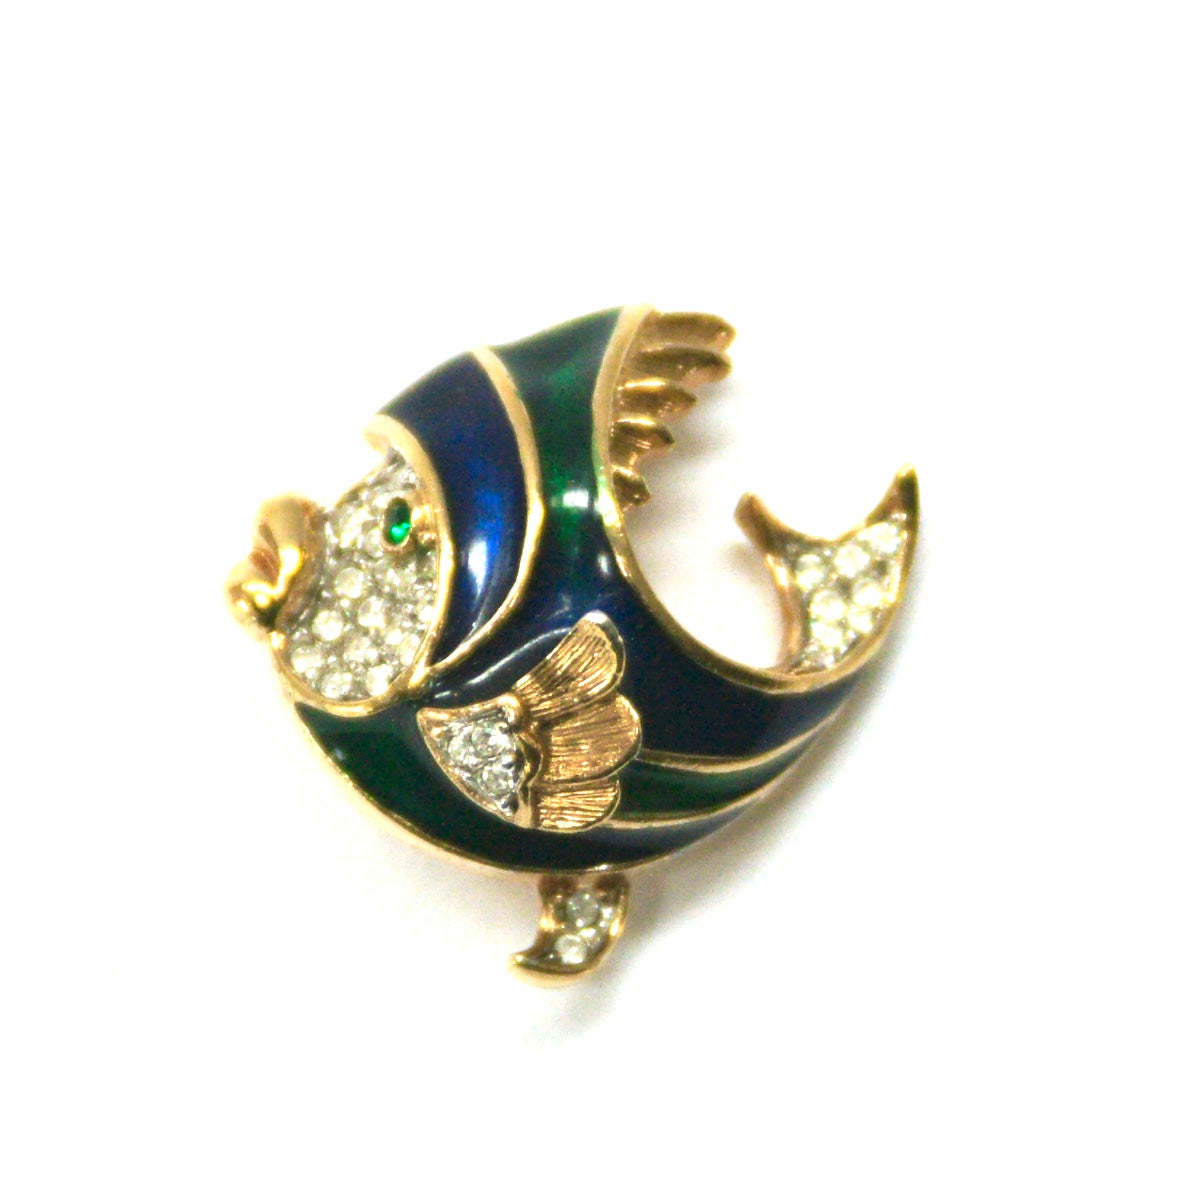 1970s Vintage Attwood & Sawyer Fish Brooch